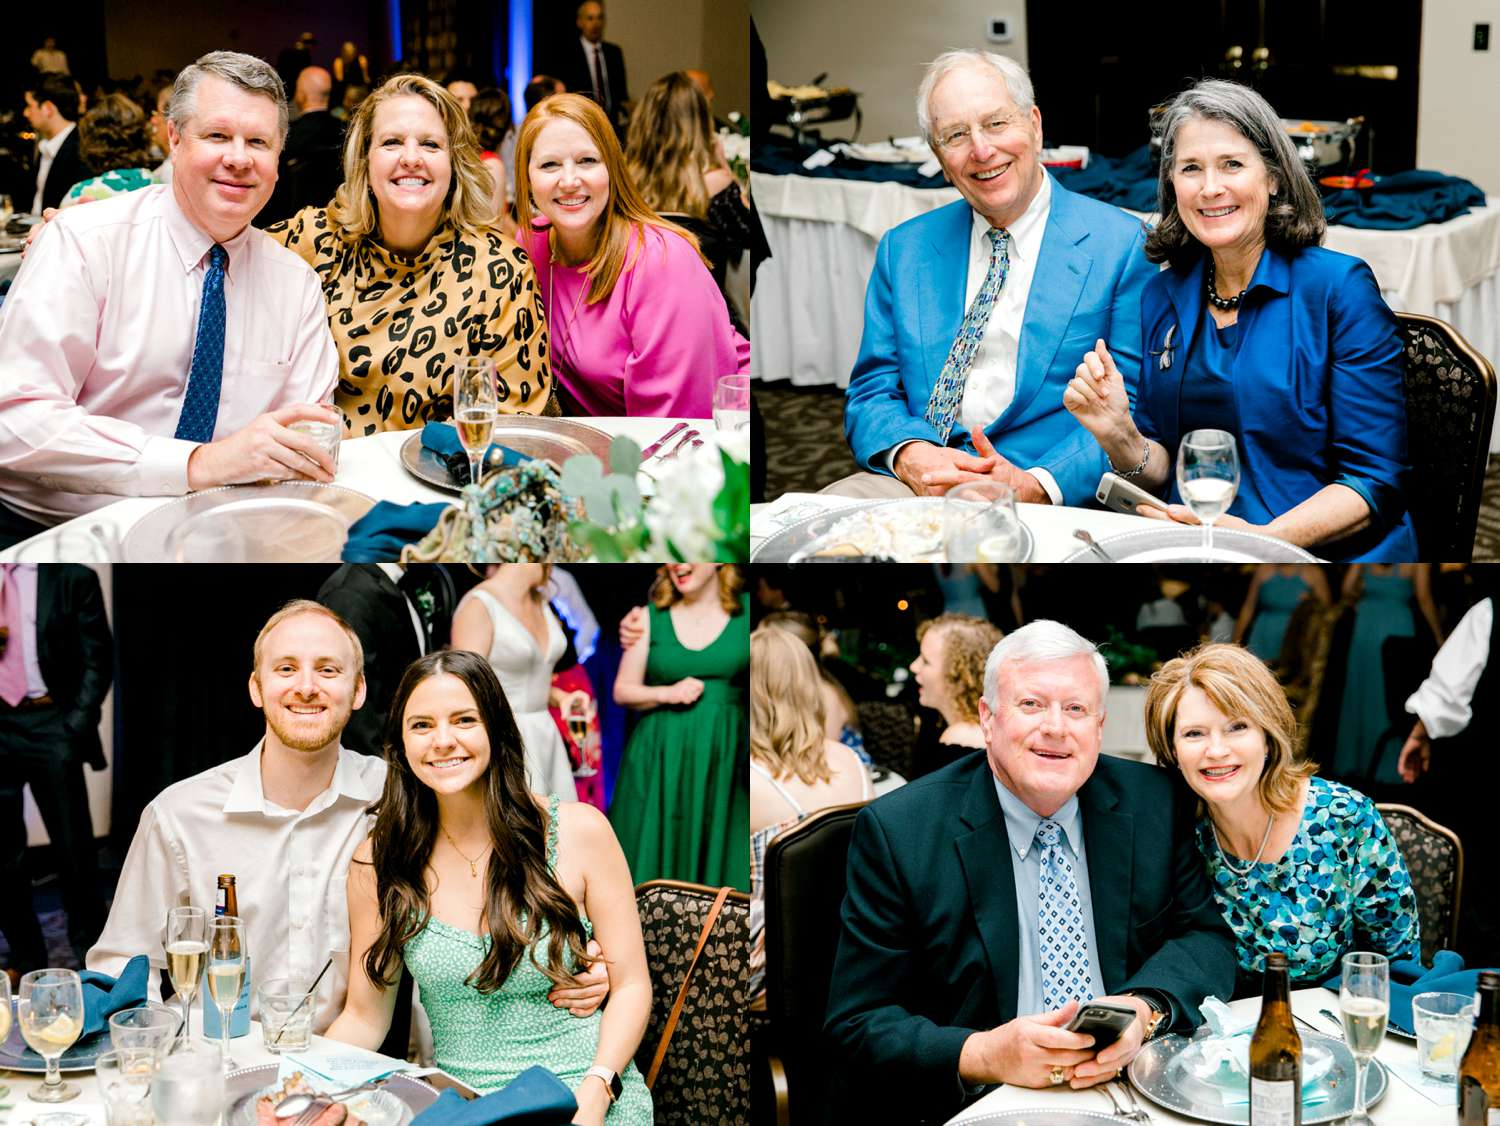 HANNAH+CRAIG+CHILDS+TEXAS+TECH+WEDDING+ALLEEJ+LUBBOCK+PHOTOGRAPHER_0151.jpg